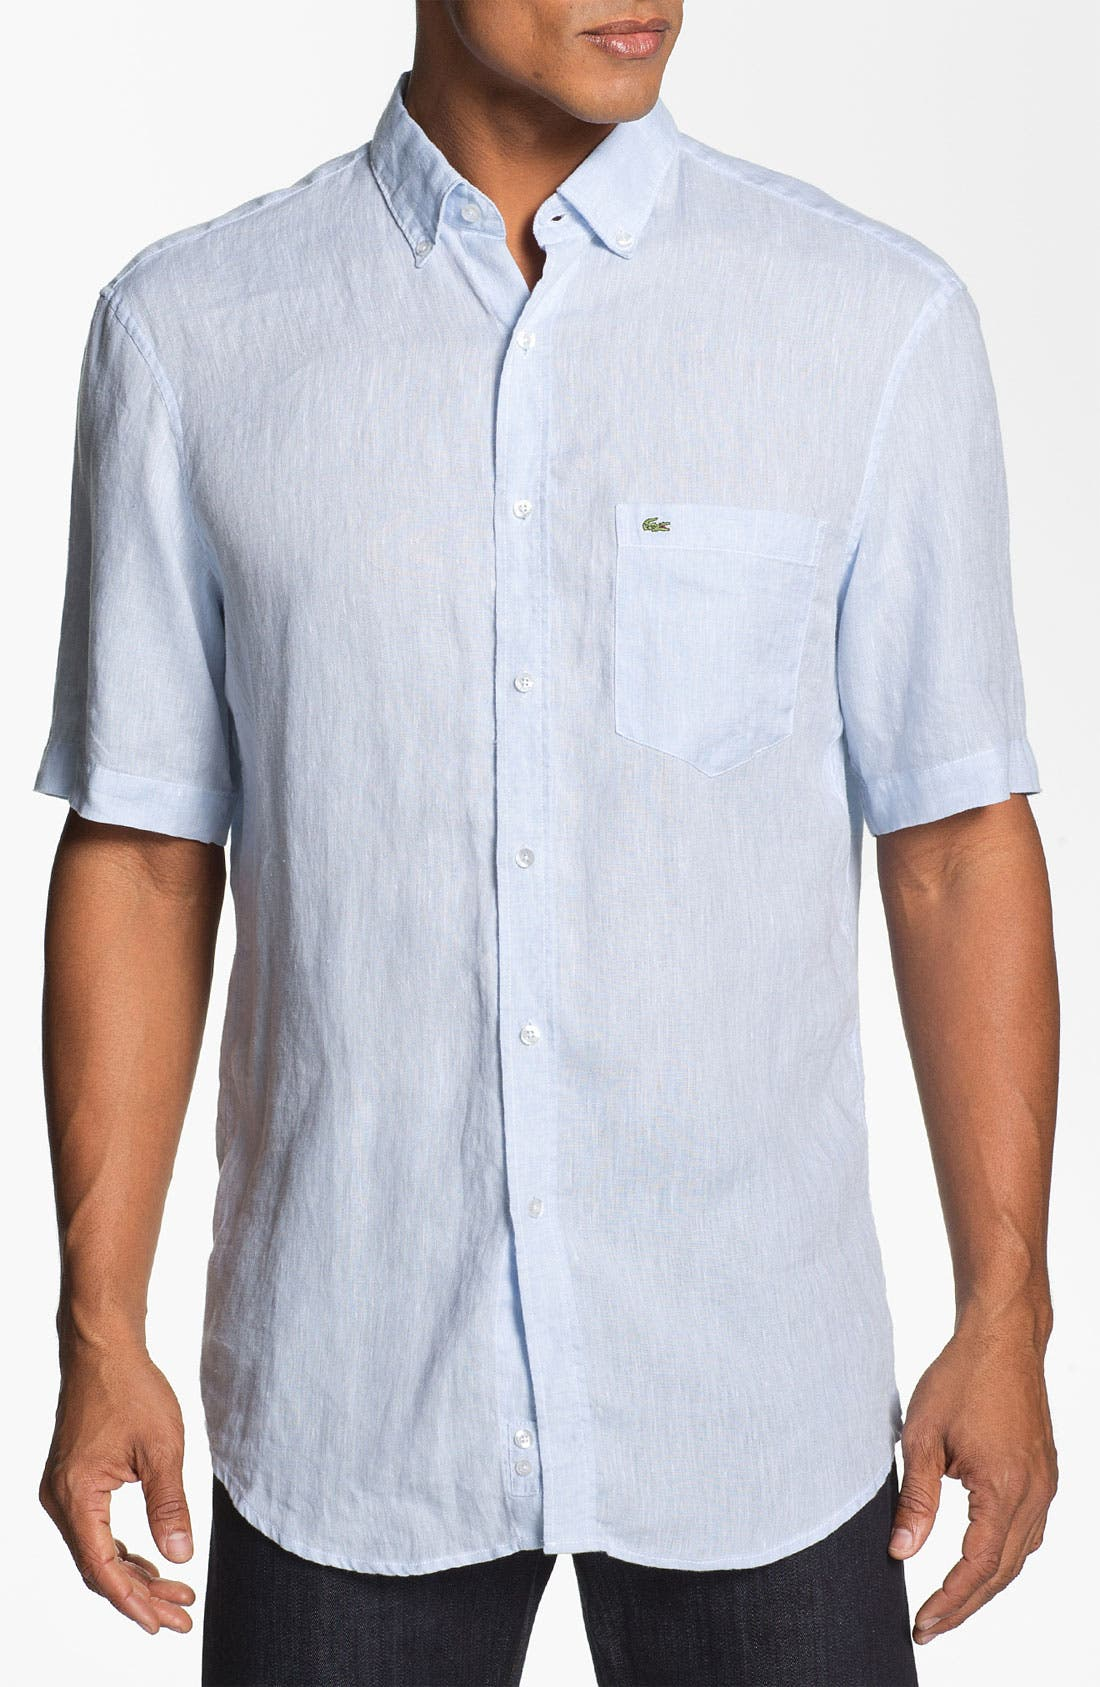 Alternate Image 1 Selected - Lacoste Short Sleeve Linen Shirt